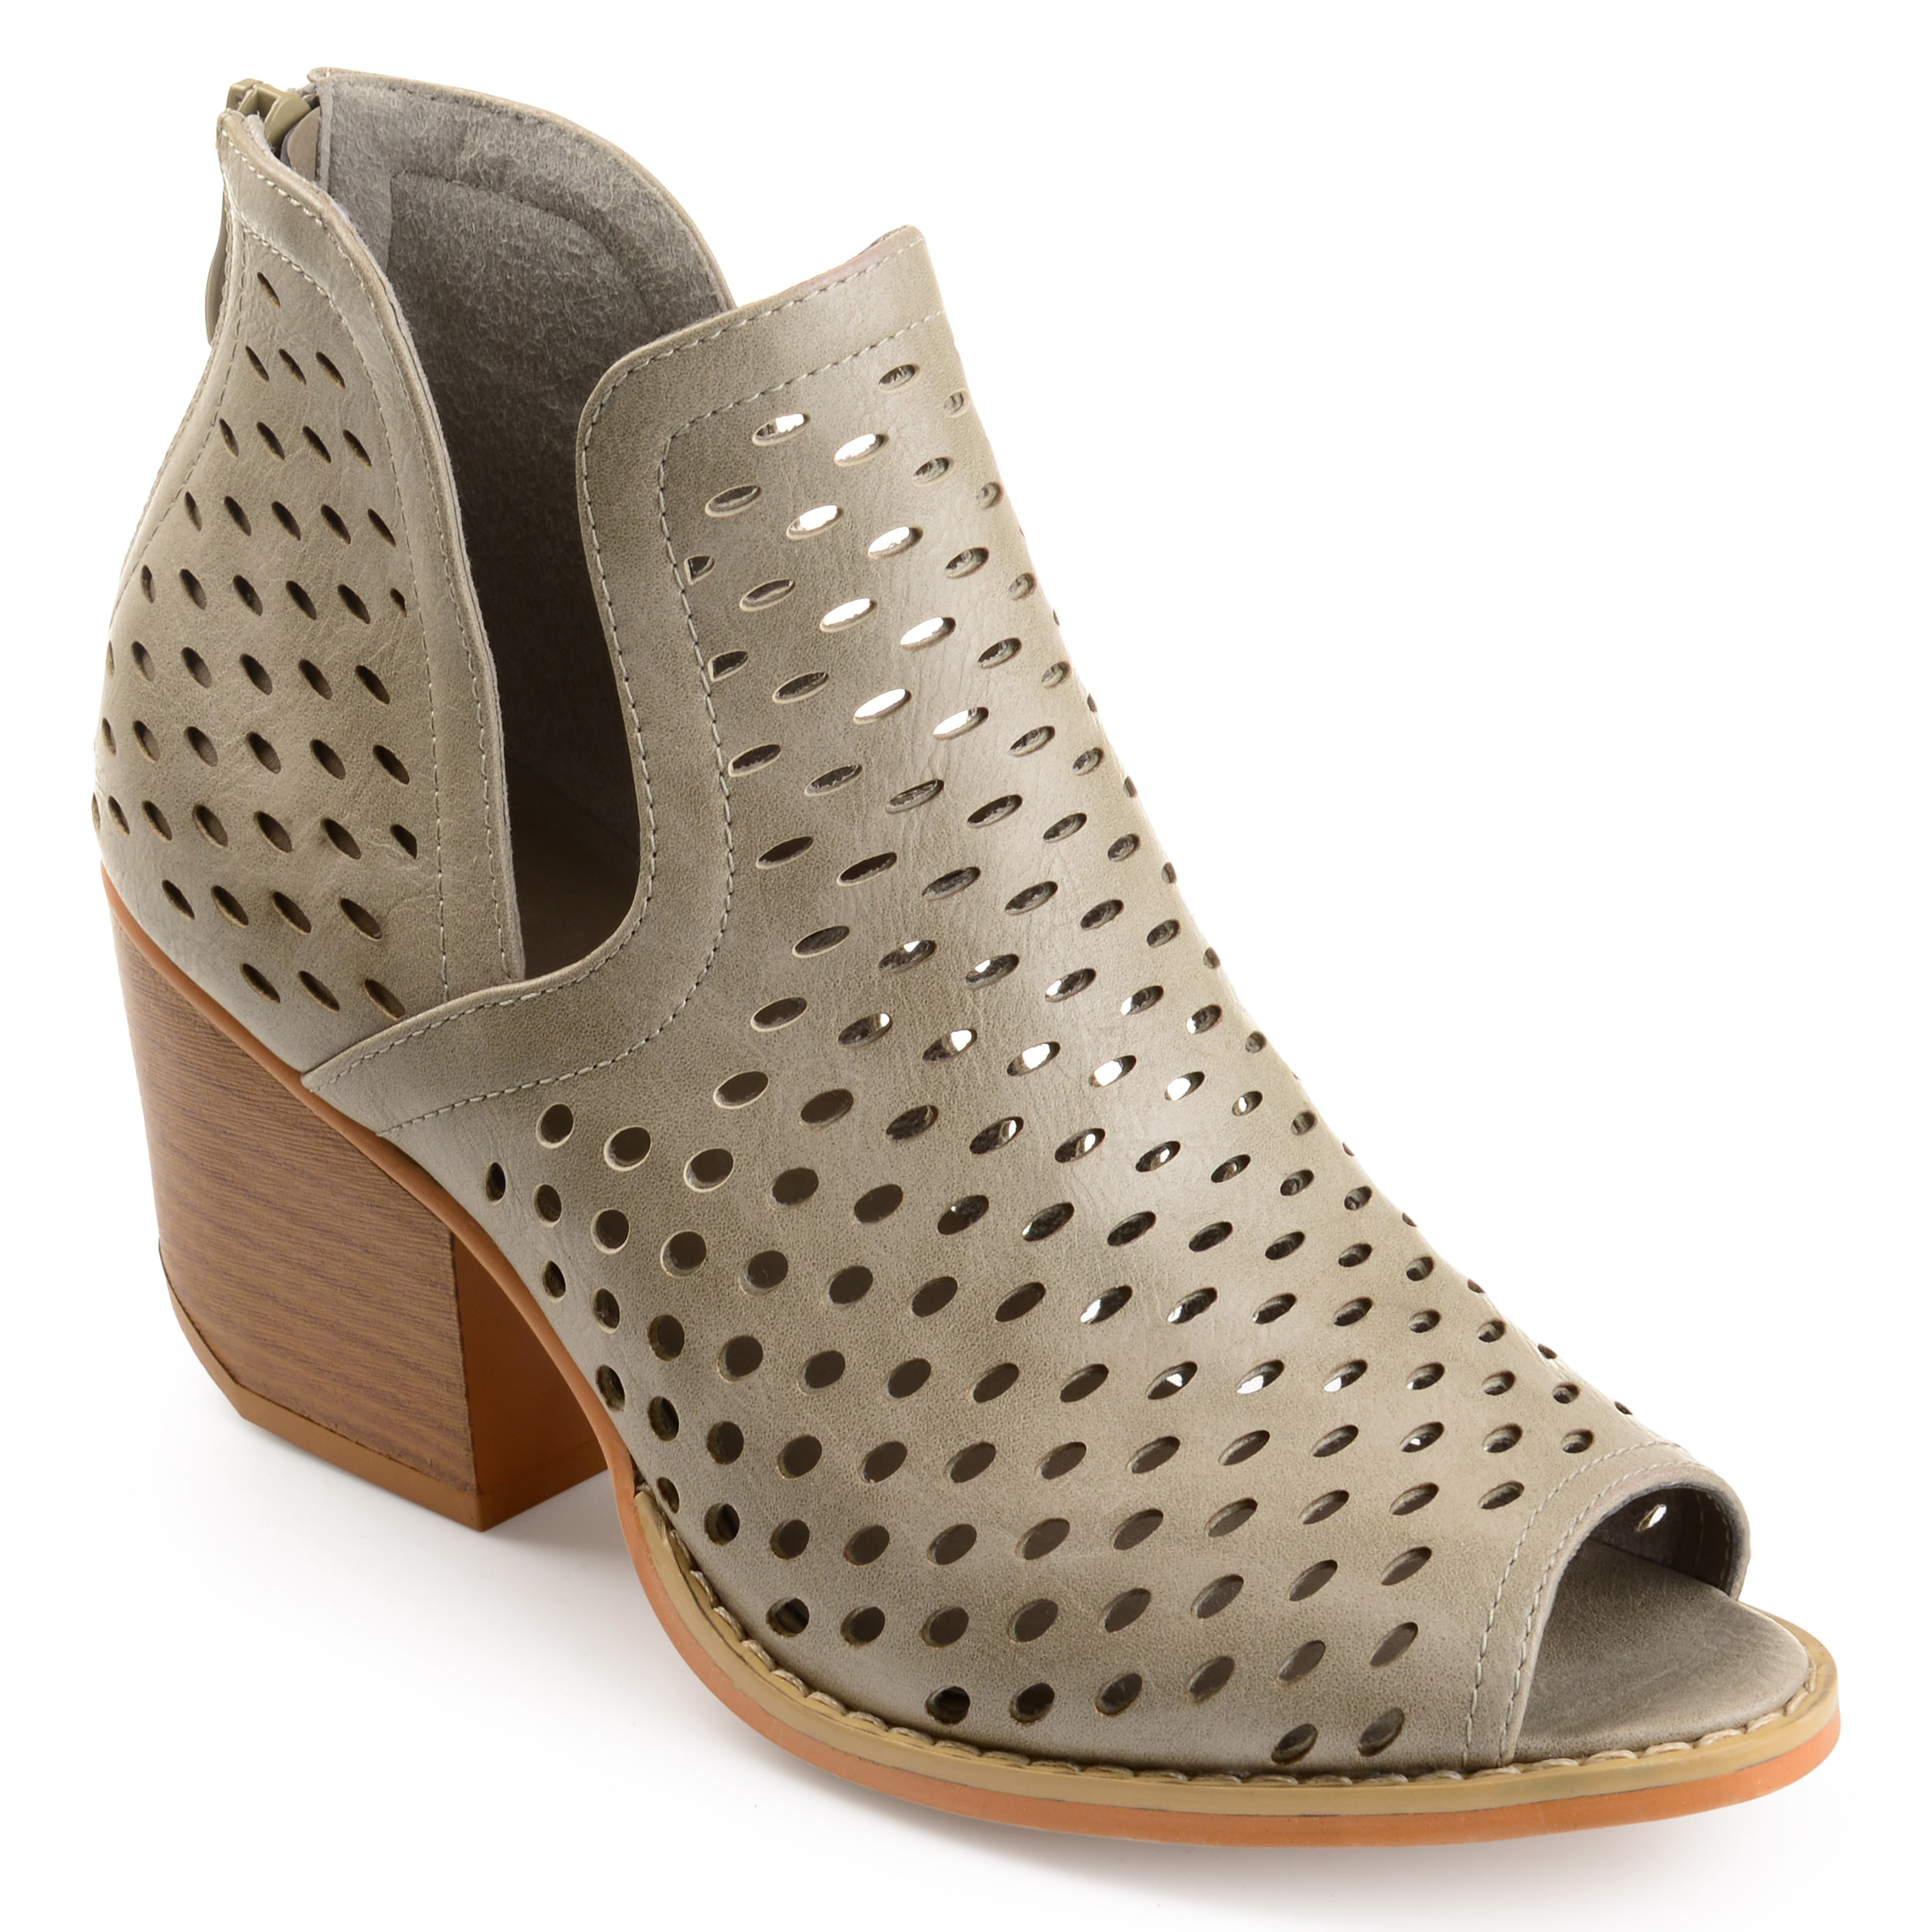 Journee Collection Alaric ... Women's Ankle Boots vjN6GHw